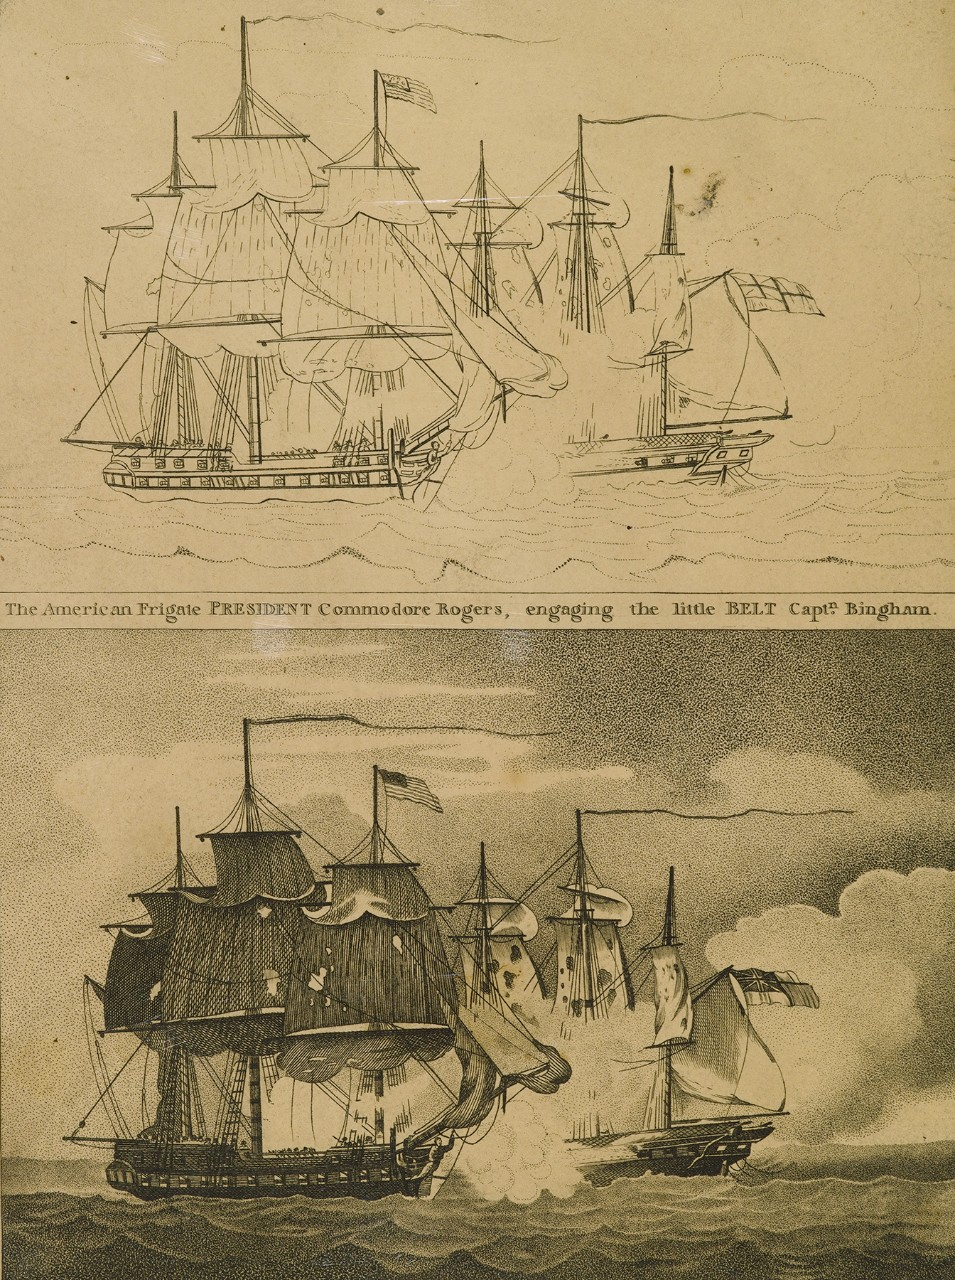 There are two images of the same sailing ship battle the top one is in progress, the bottom one is completed.